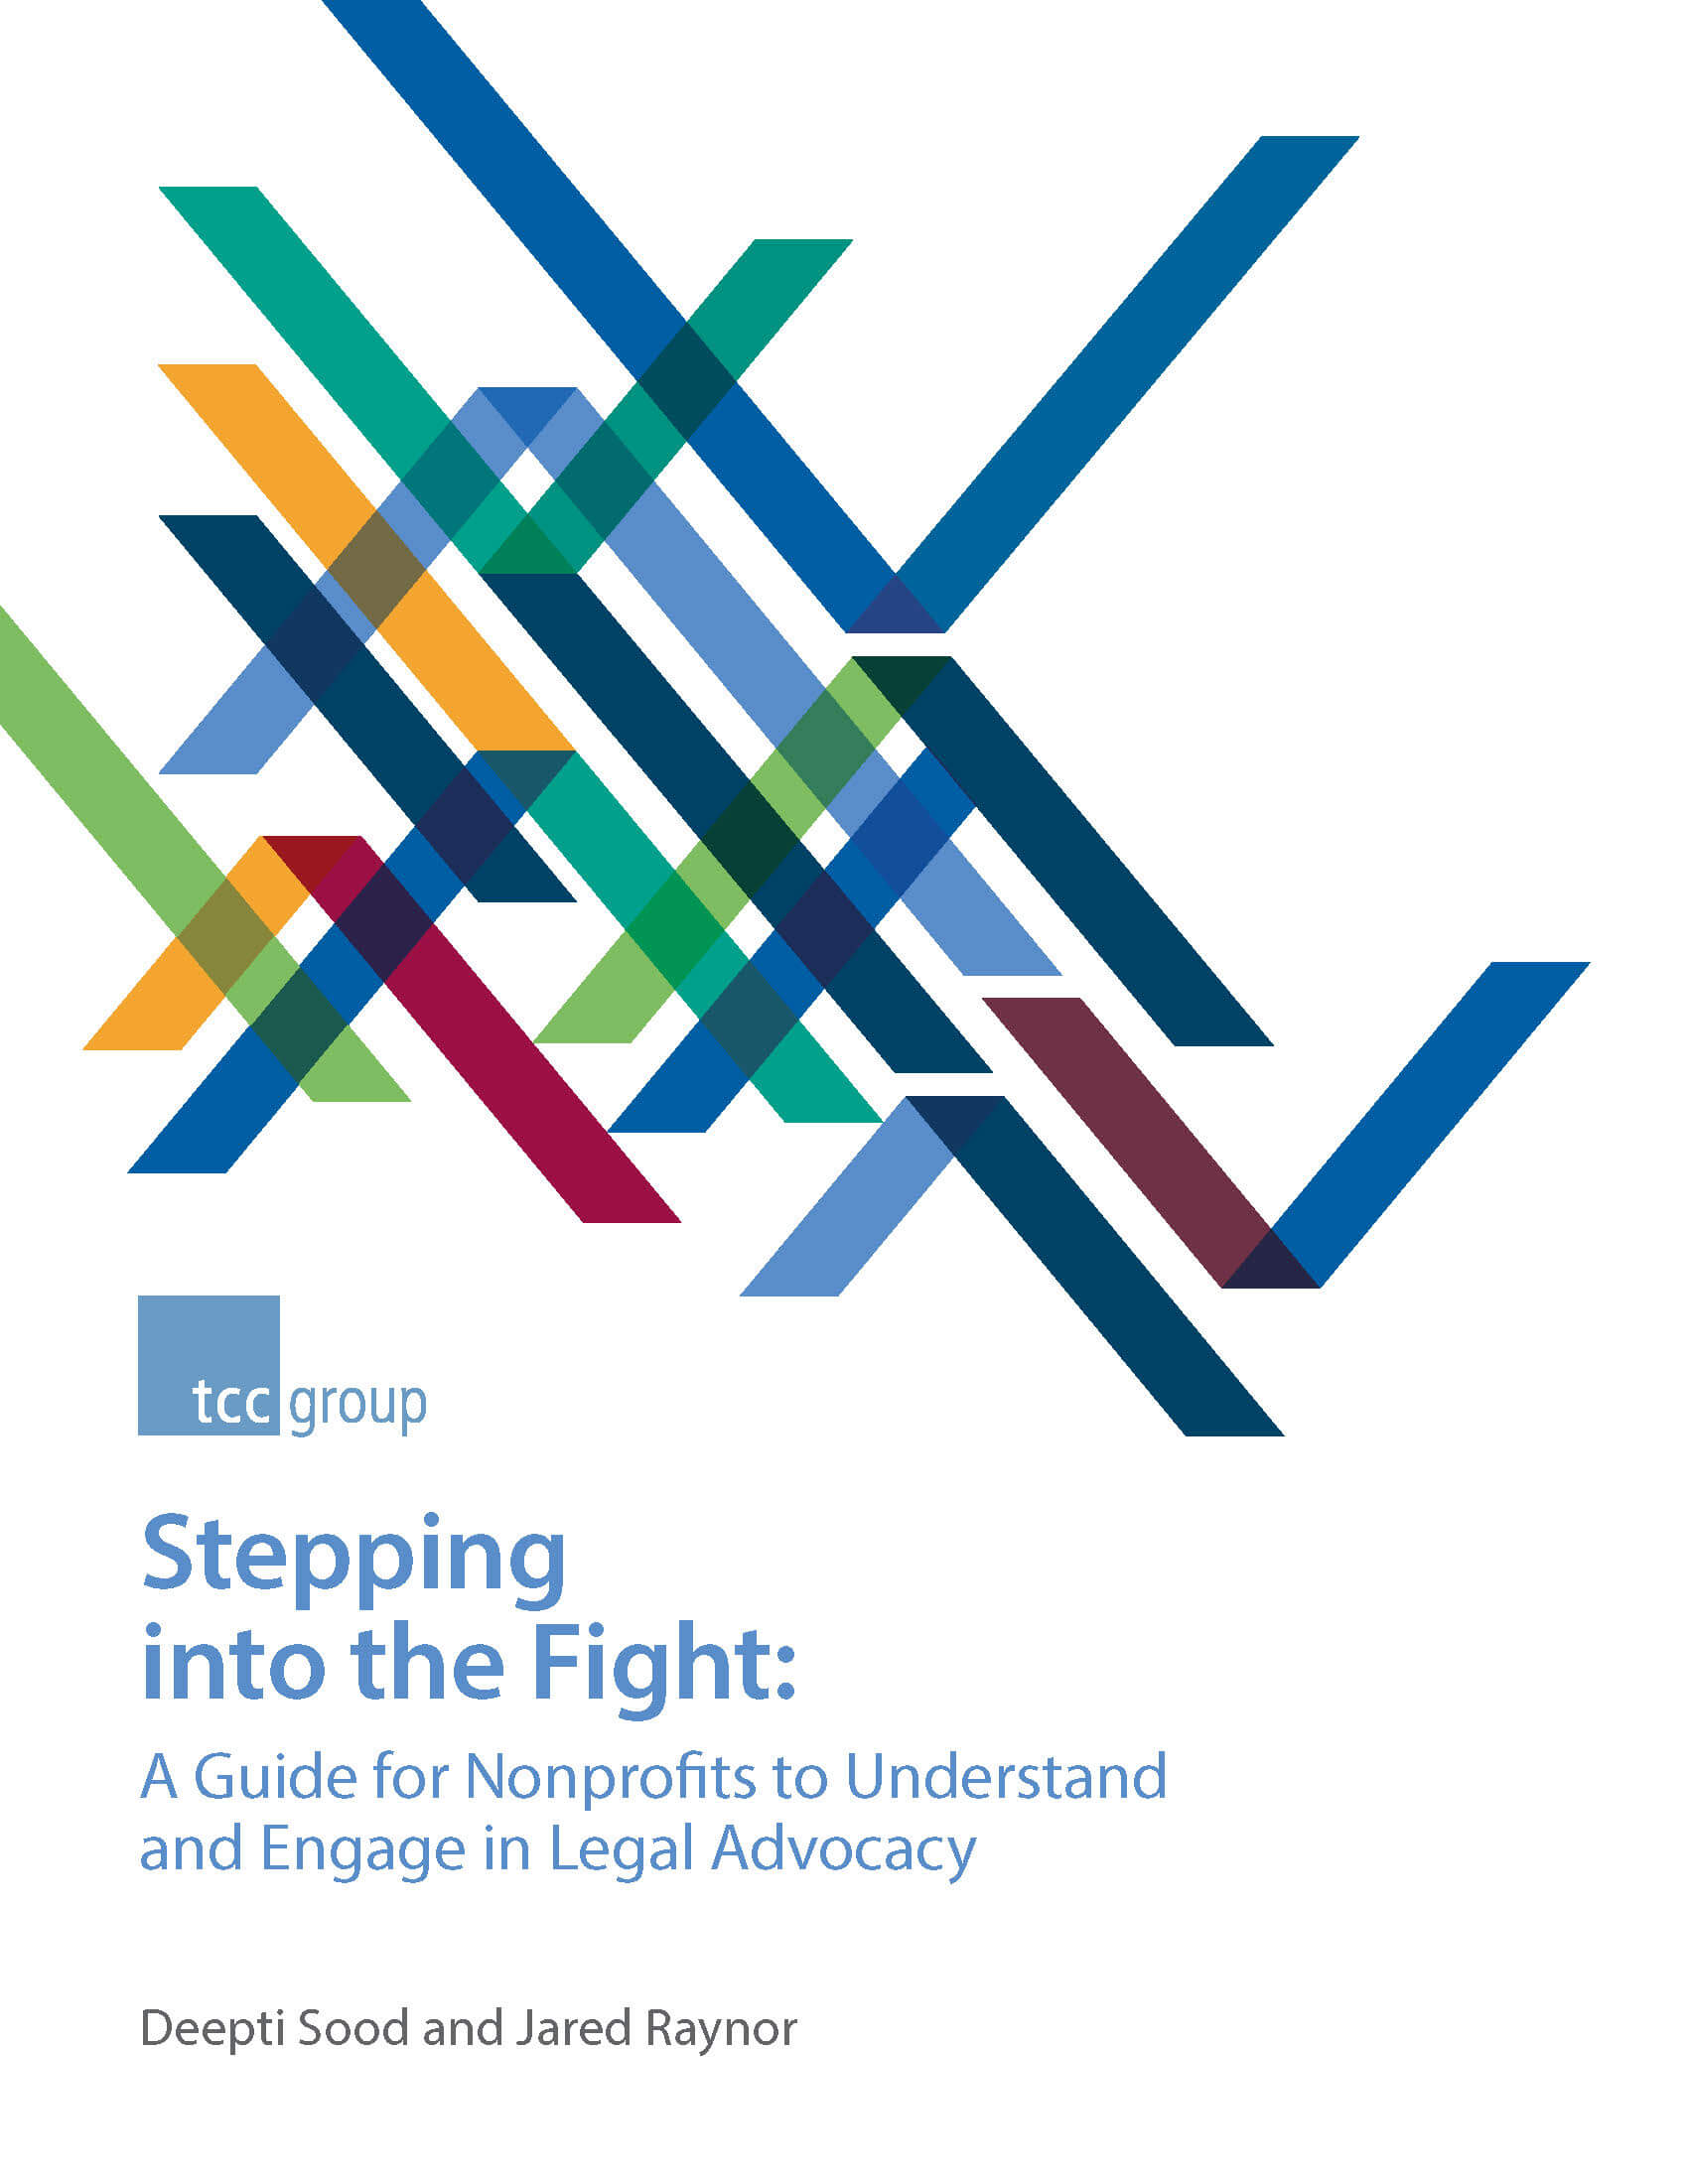 Stepping into the Fight: A Guide for Nonprofits to Understand and Engage in Legal Advocacy